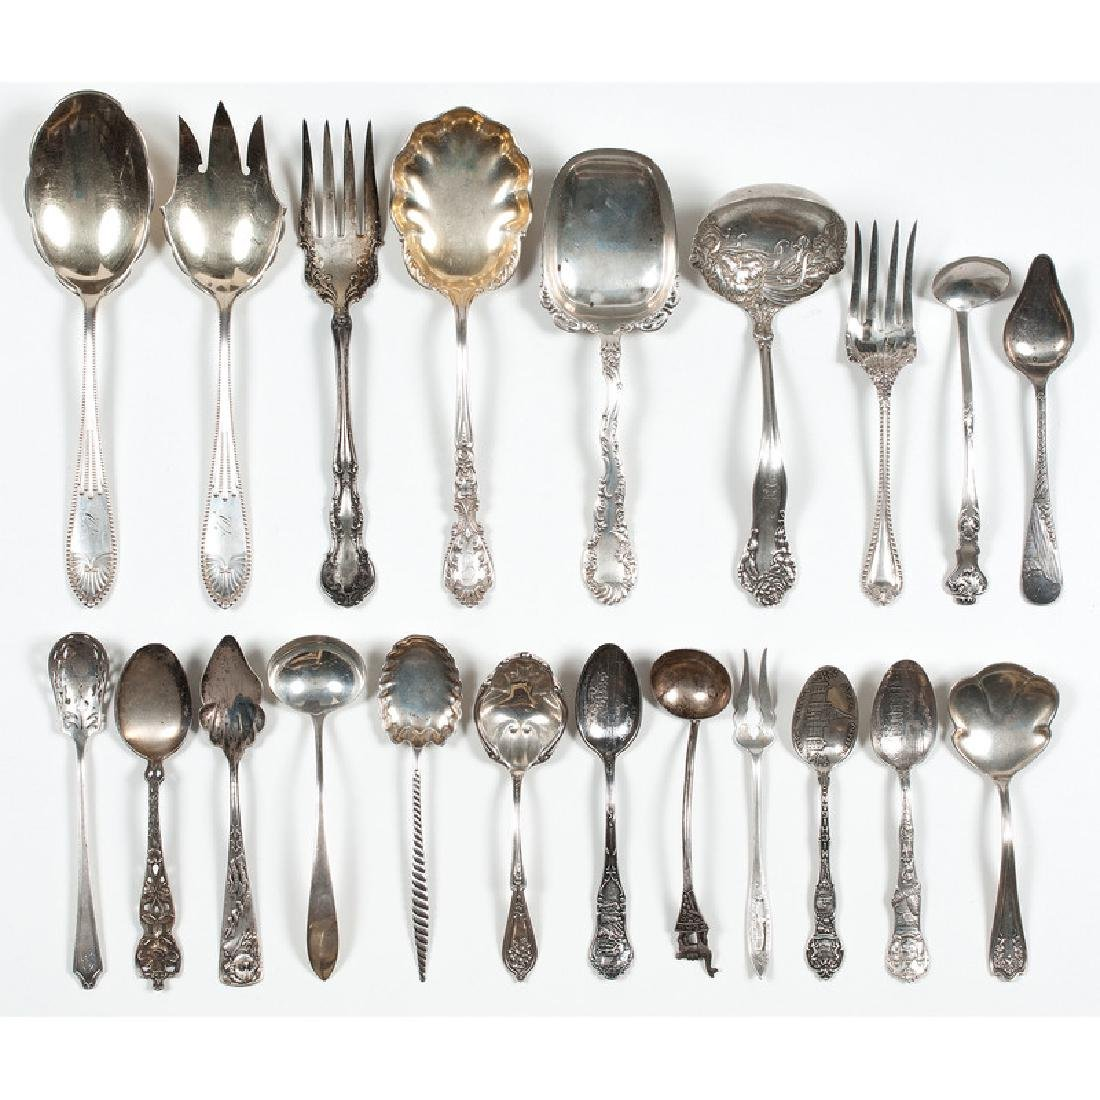 American Sterling Flatware Including Souvenir Spoons - 2